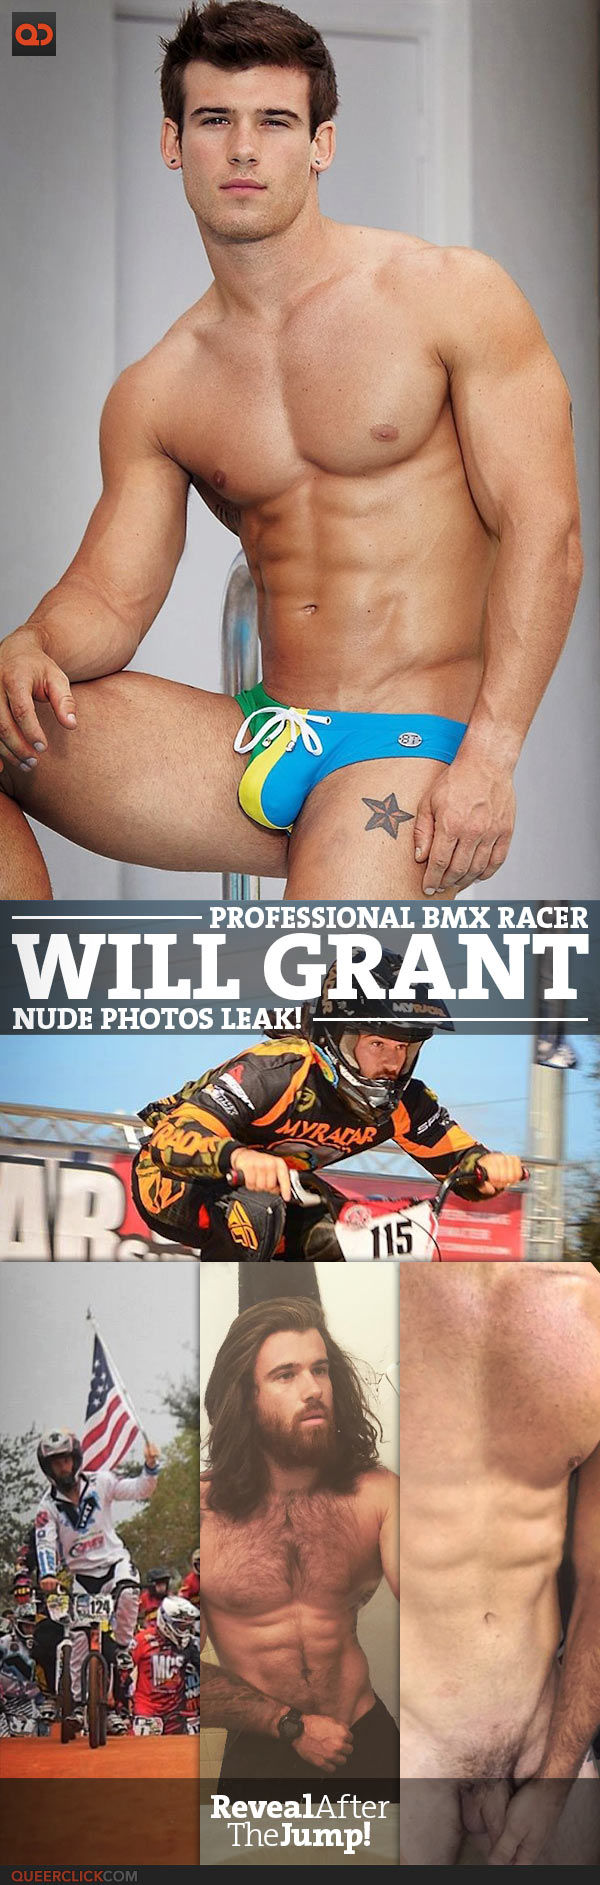 Will Grant, Professional BMX Racer, Nude Photos Leak!